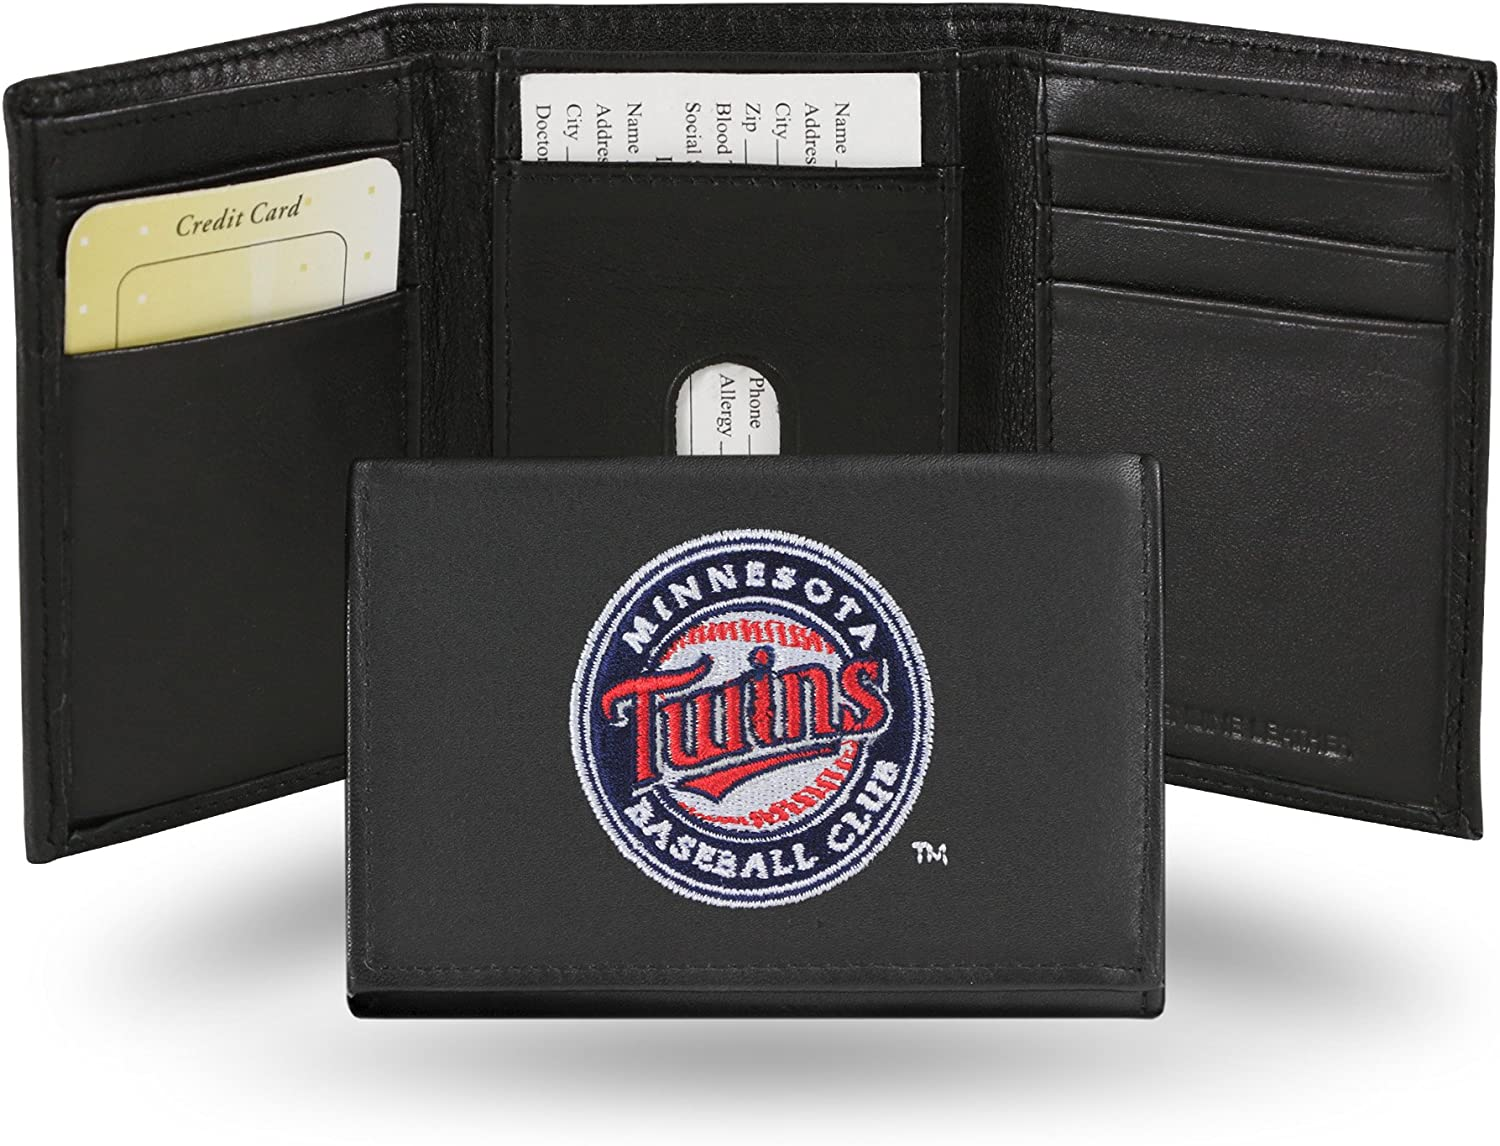 MLB Minnesota Twins Embroidered Genuine Cowhide Leather Trifold Wallet : Wallets : Sports & Outdoors